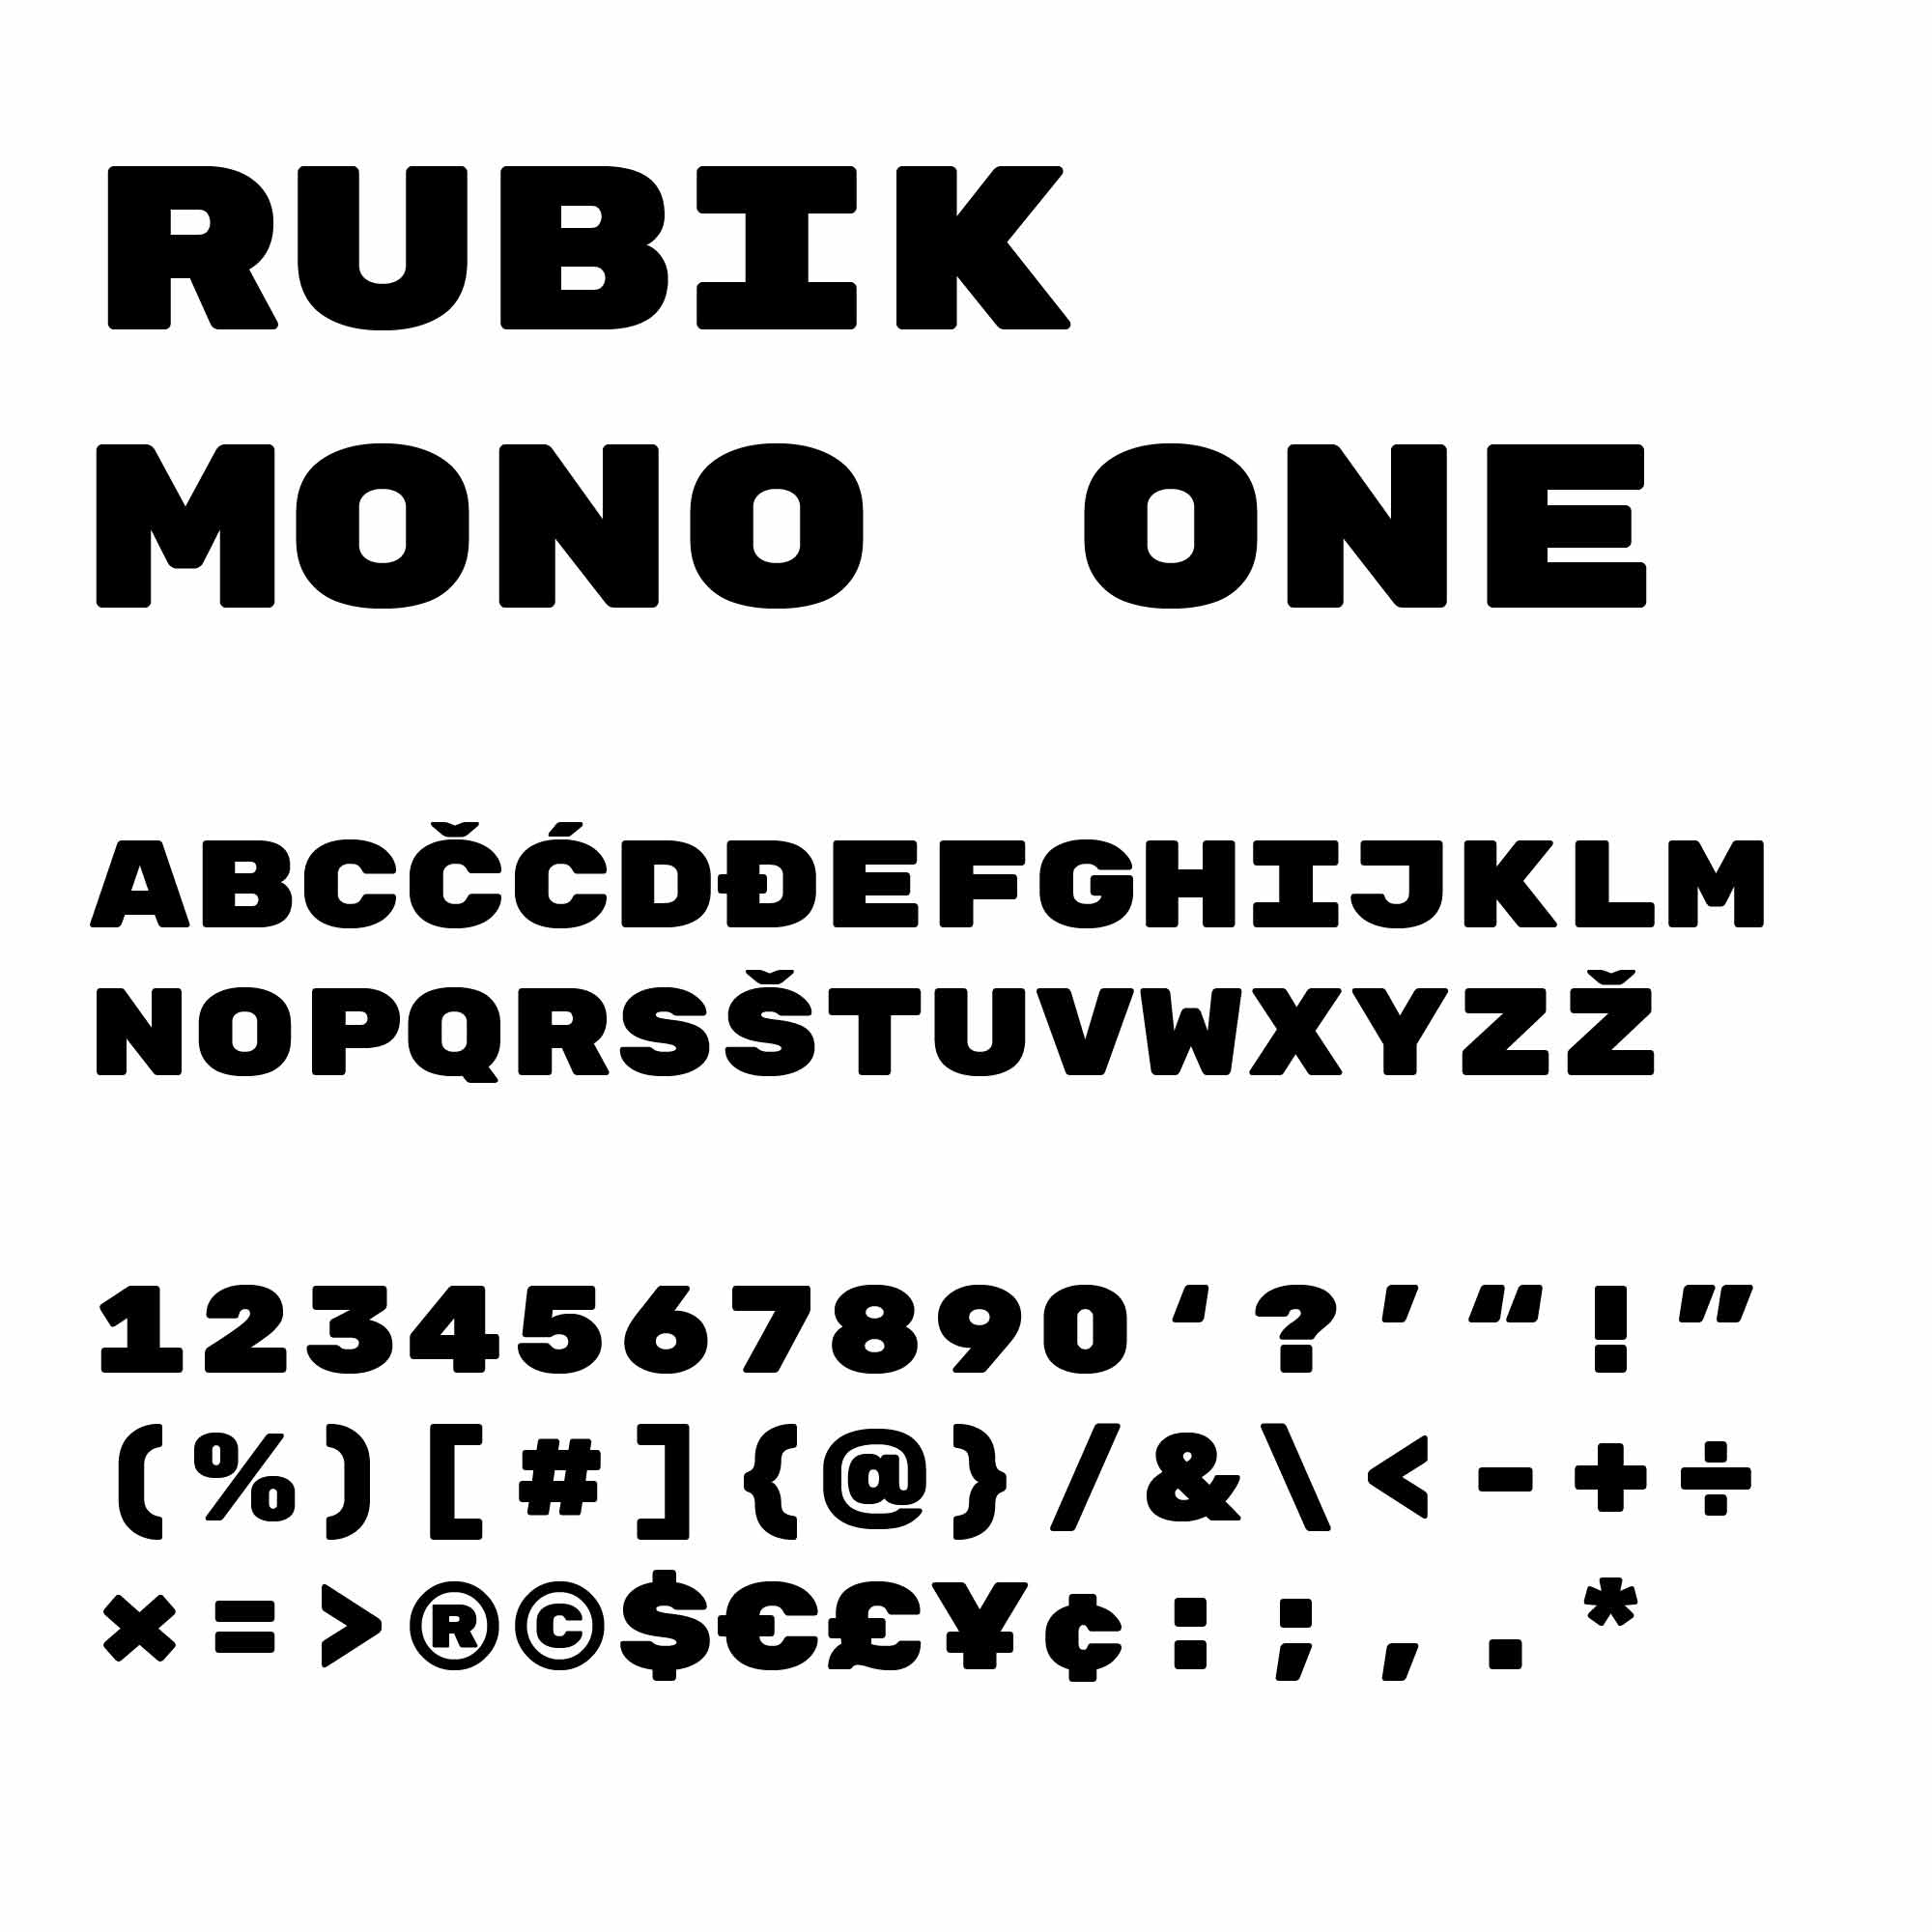 Image of the typeface used in the RTTR brand